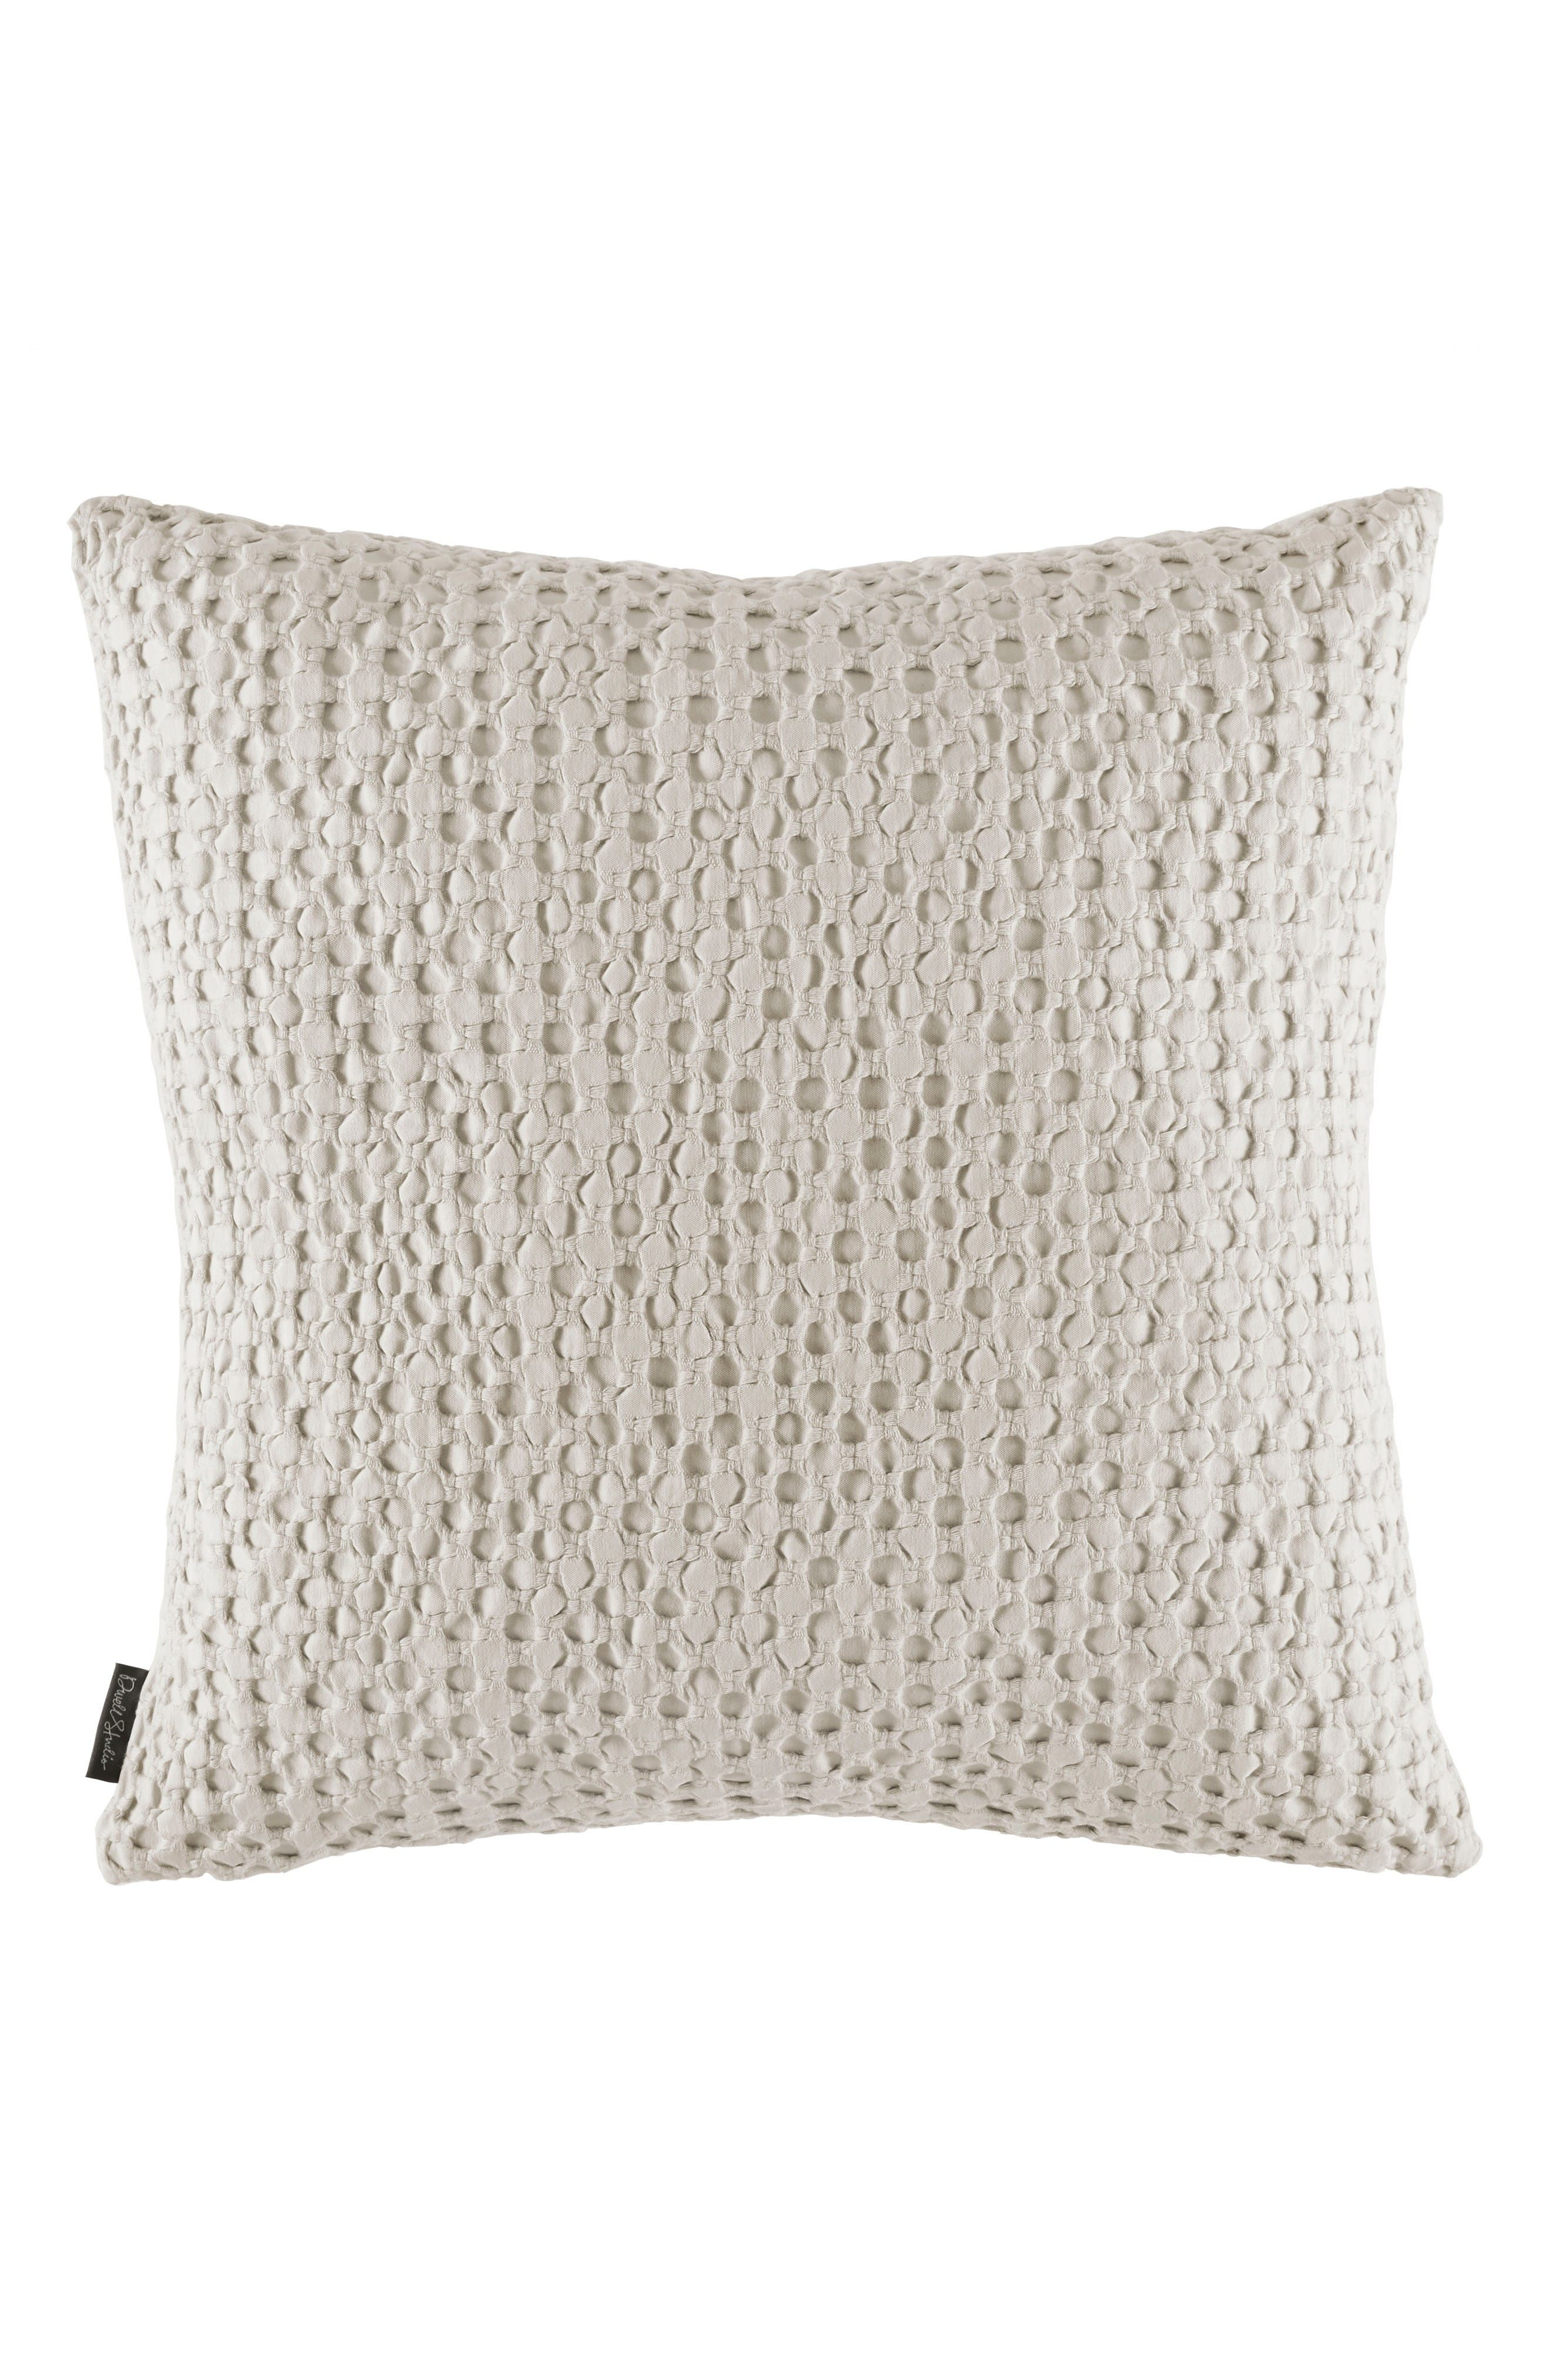 Alternate Image 1 Selected - DwellStudio Thayer Accent Pillow